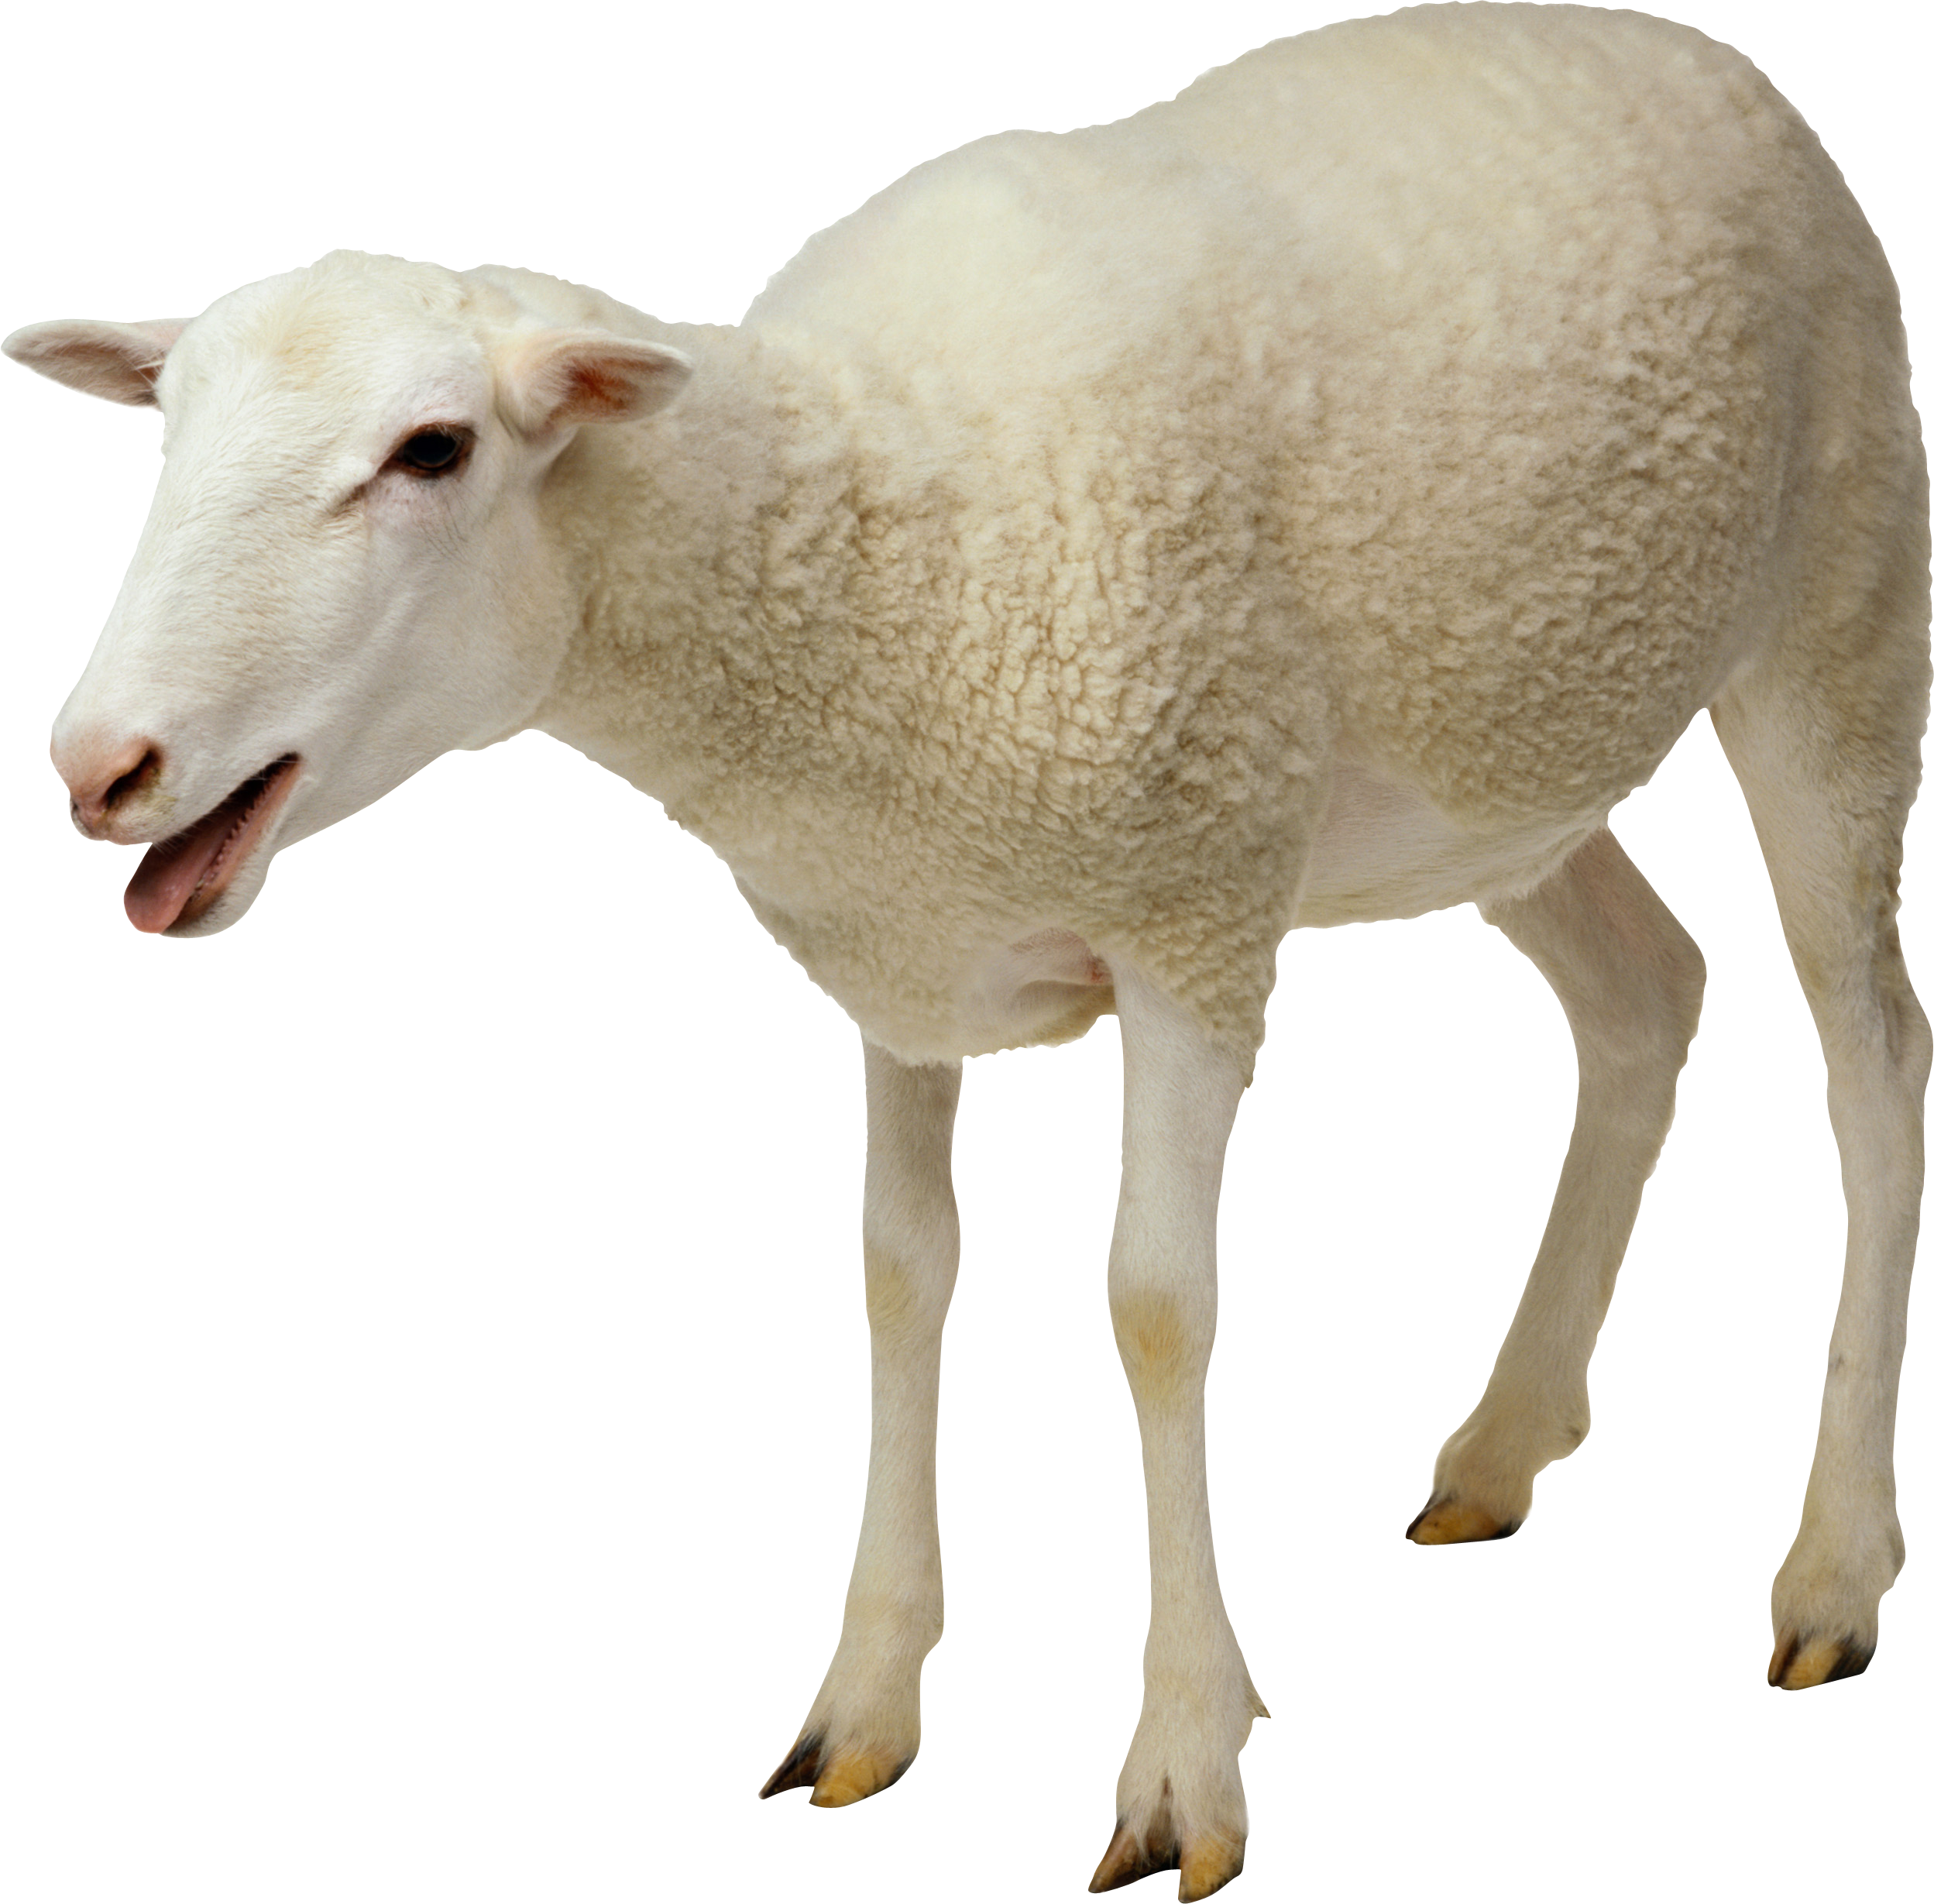 2497x2458 Sheep Png Image, Free Download